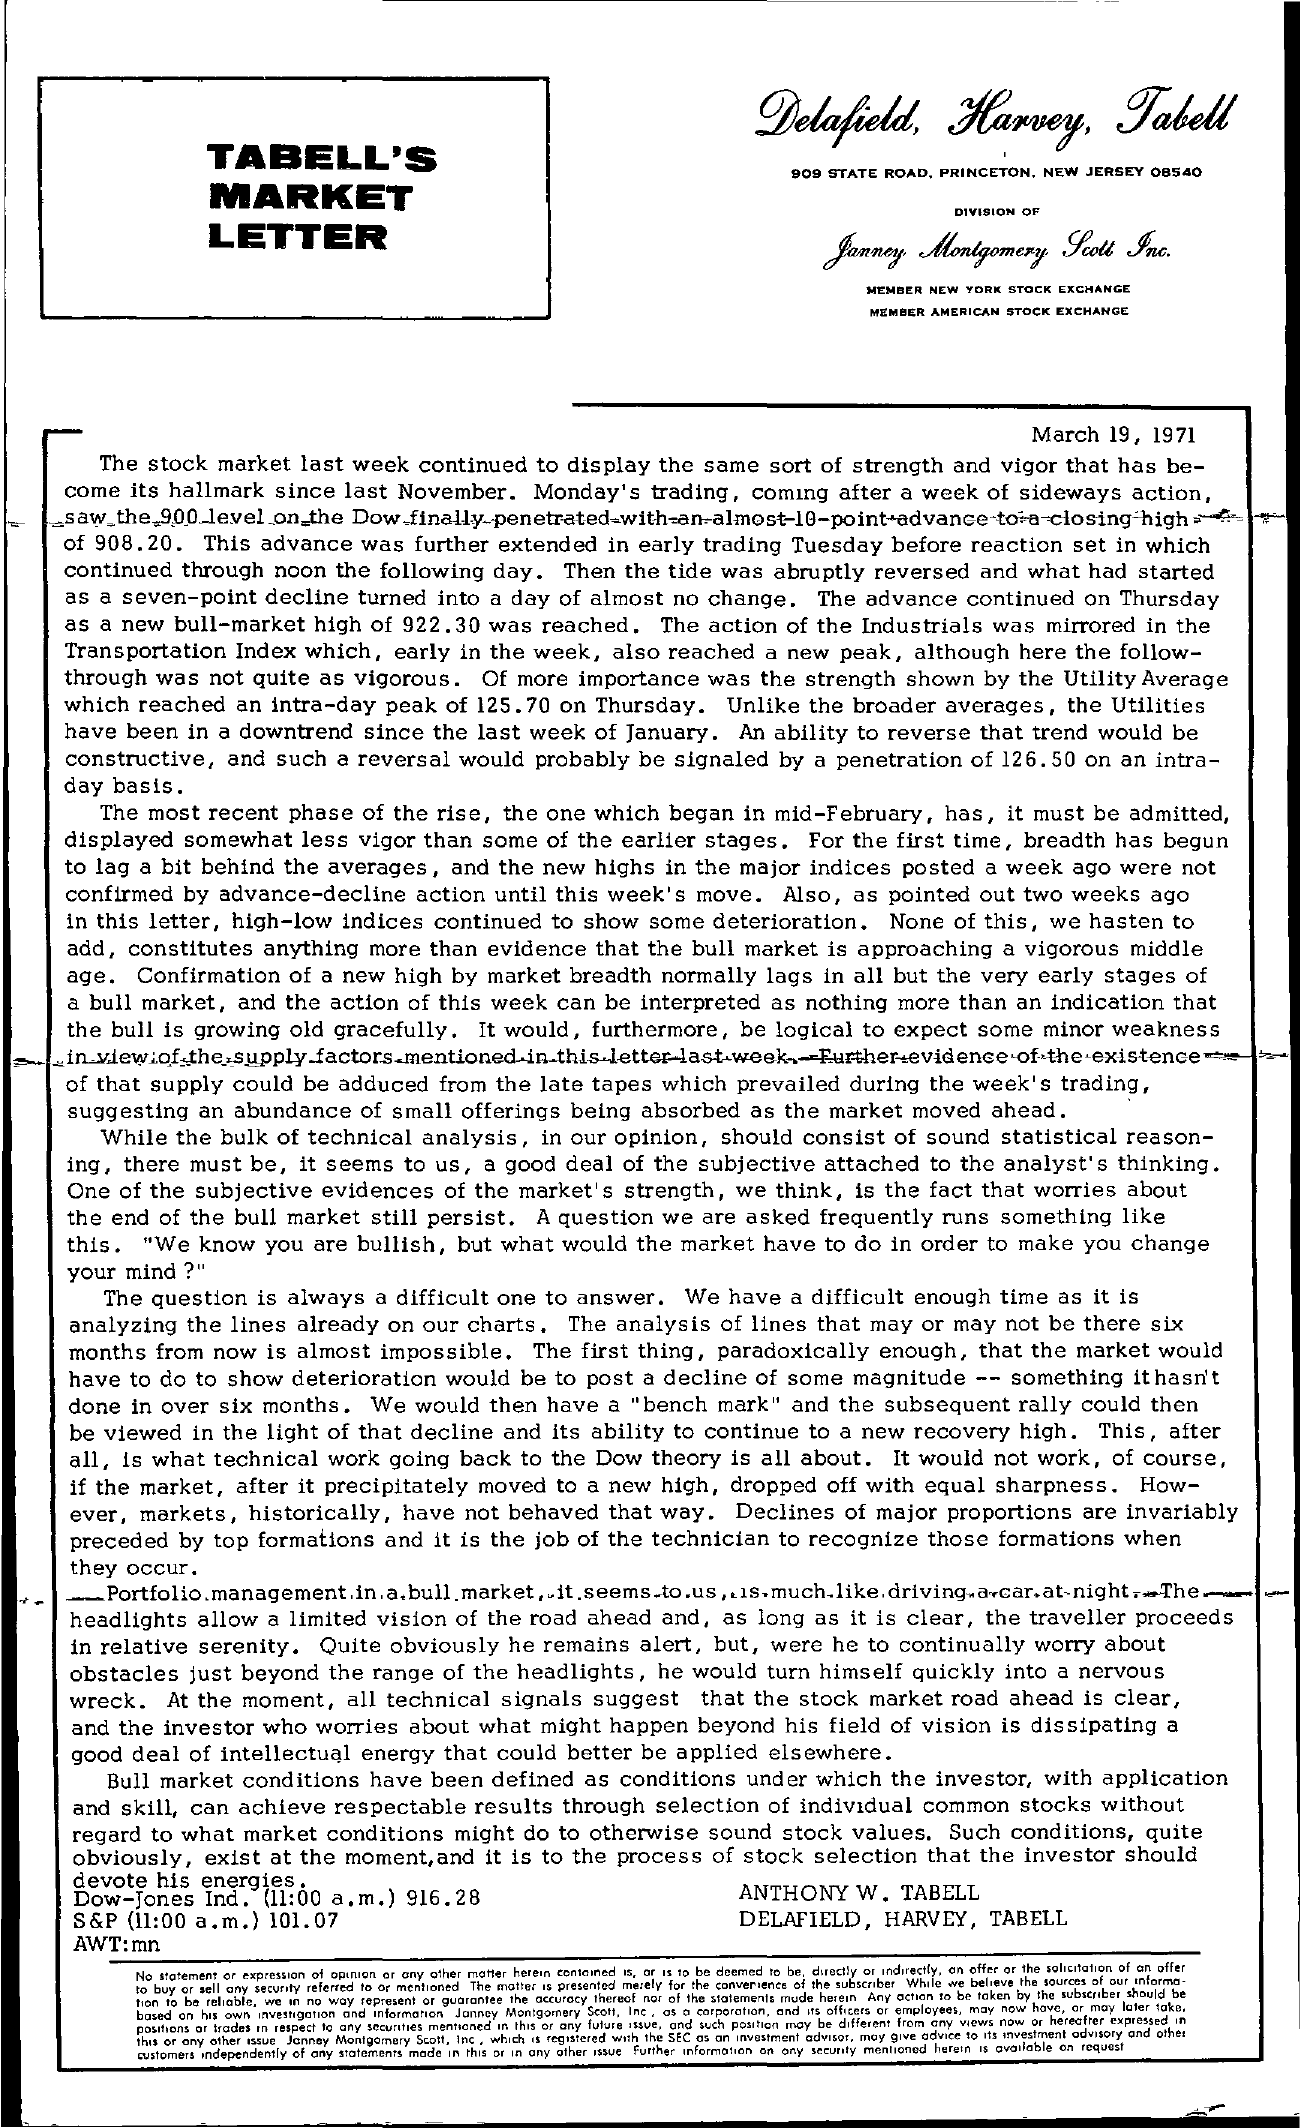 Tabell's Market Letter - March 19, 1971